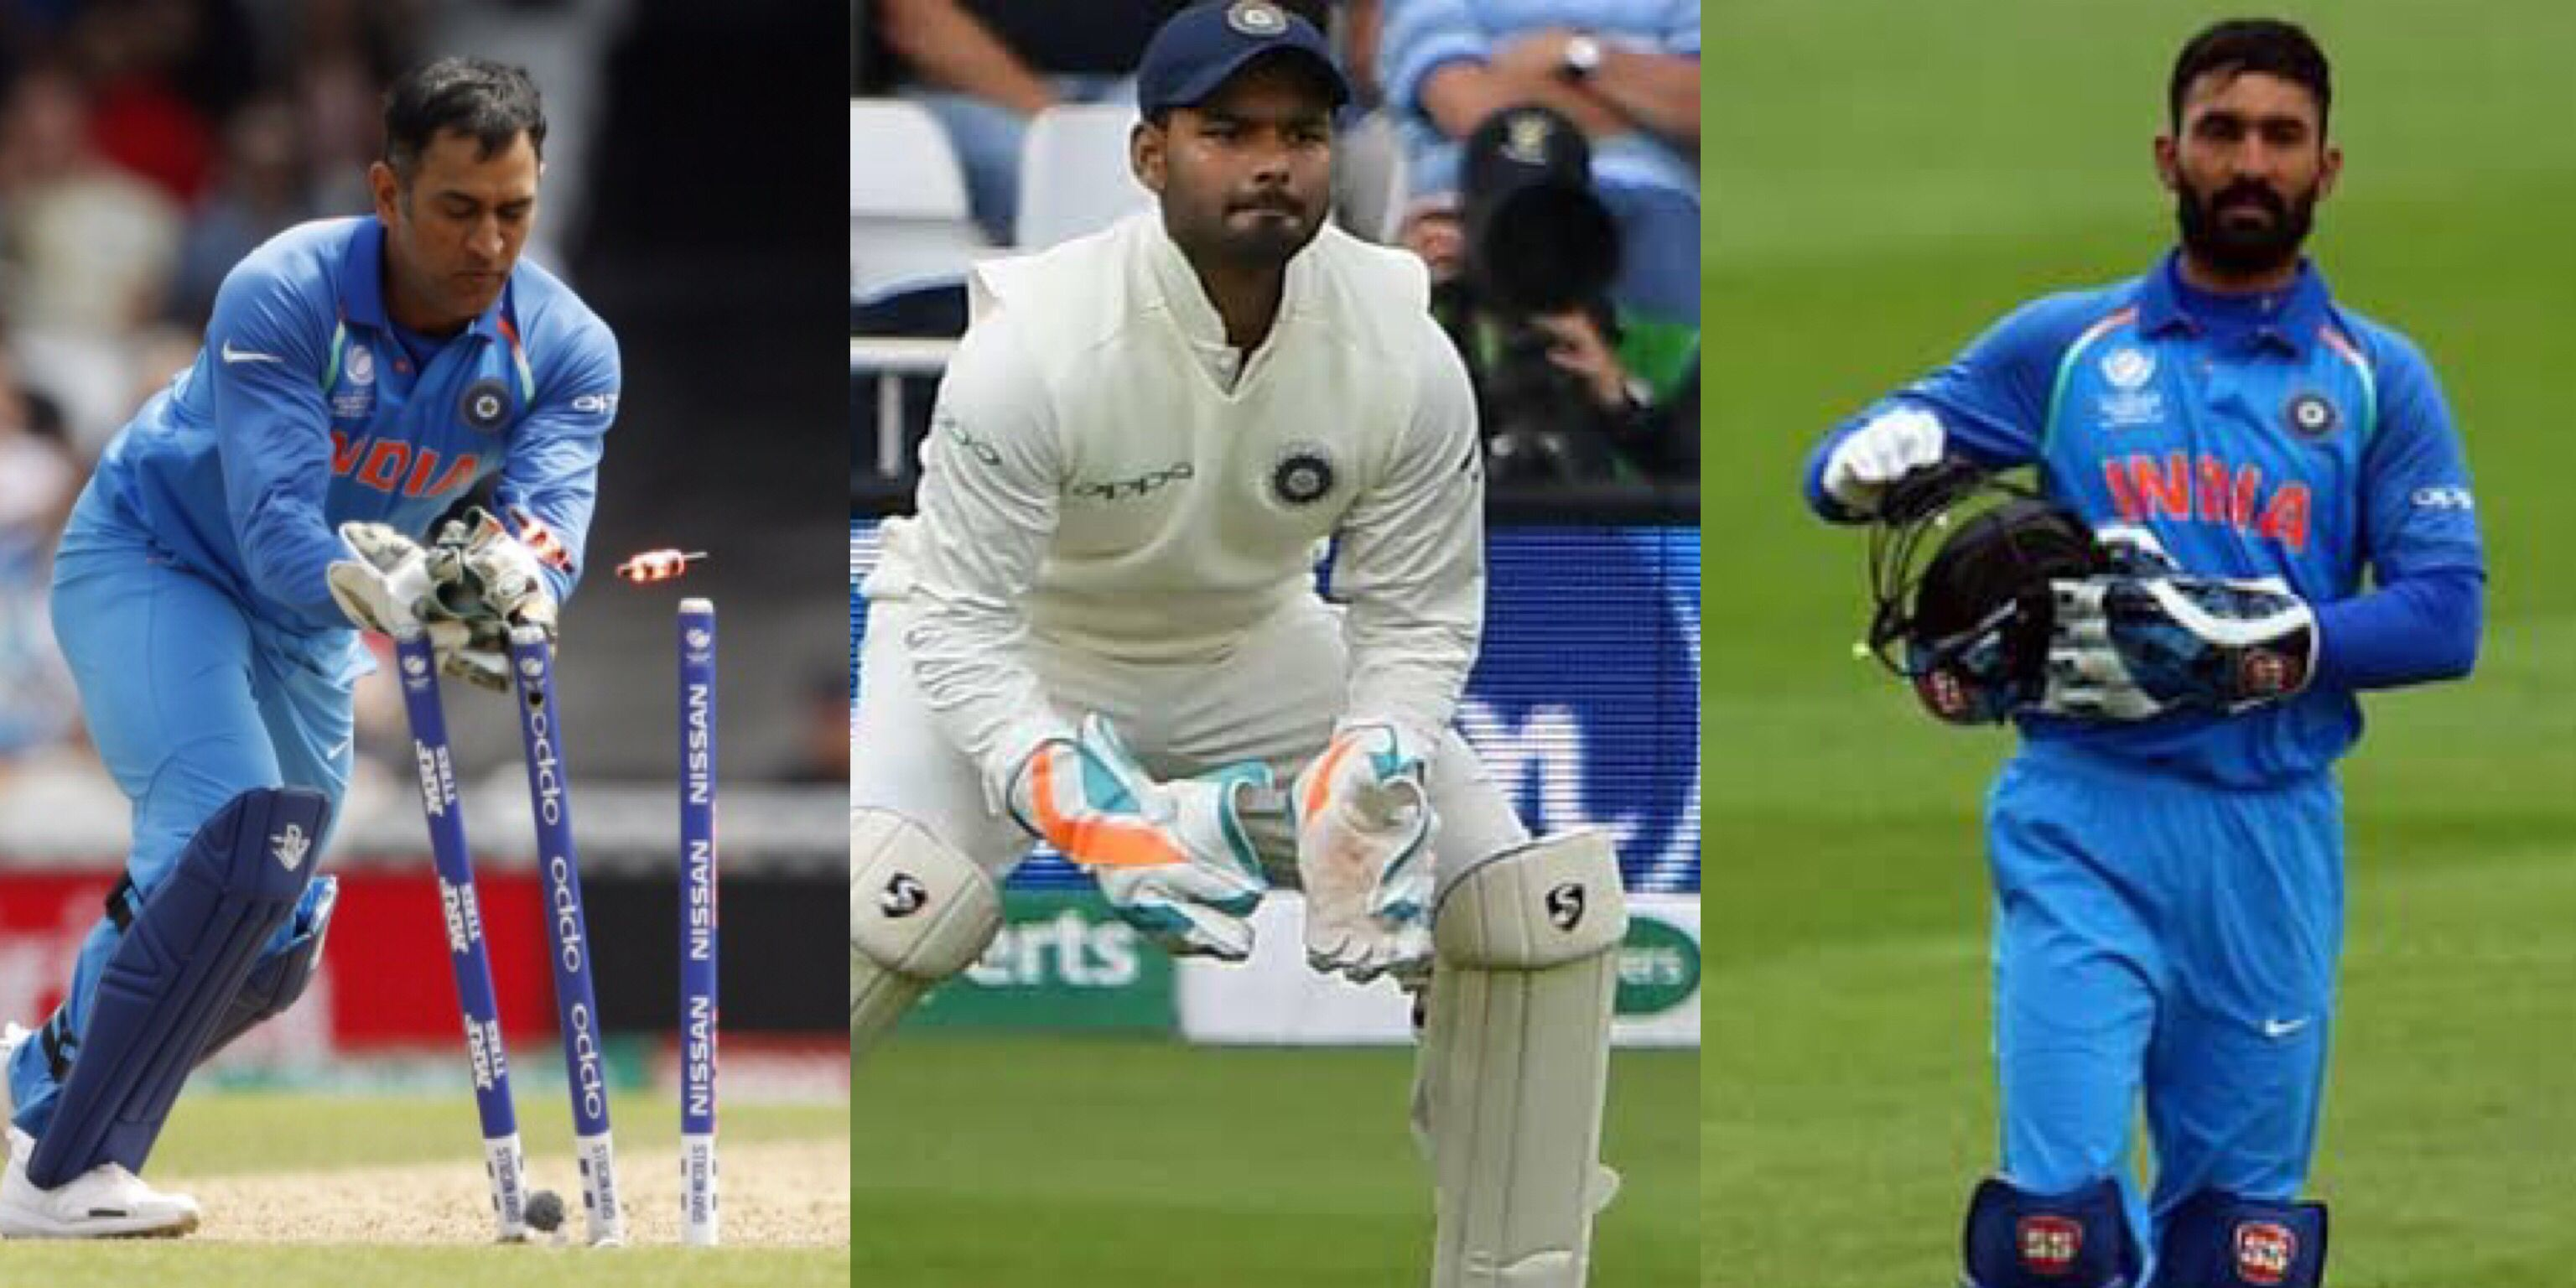 3 wicketkeepers in the playing XI for India in the first